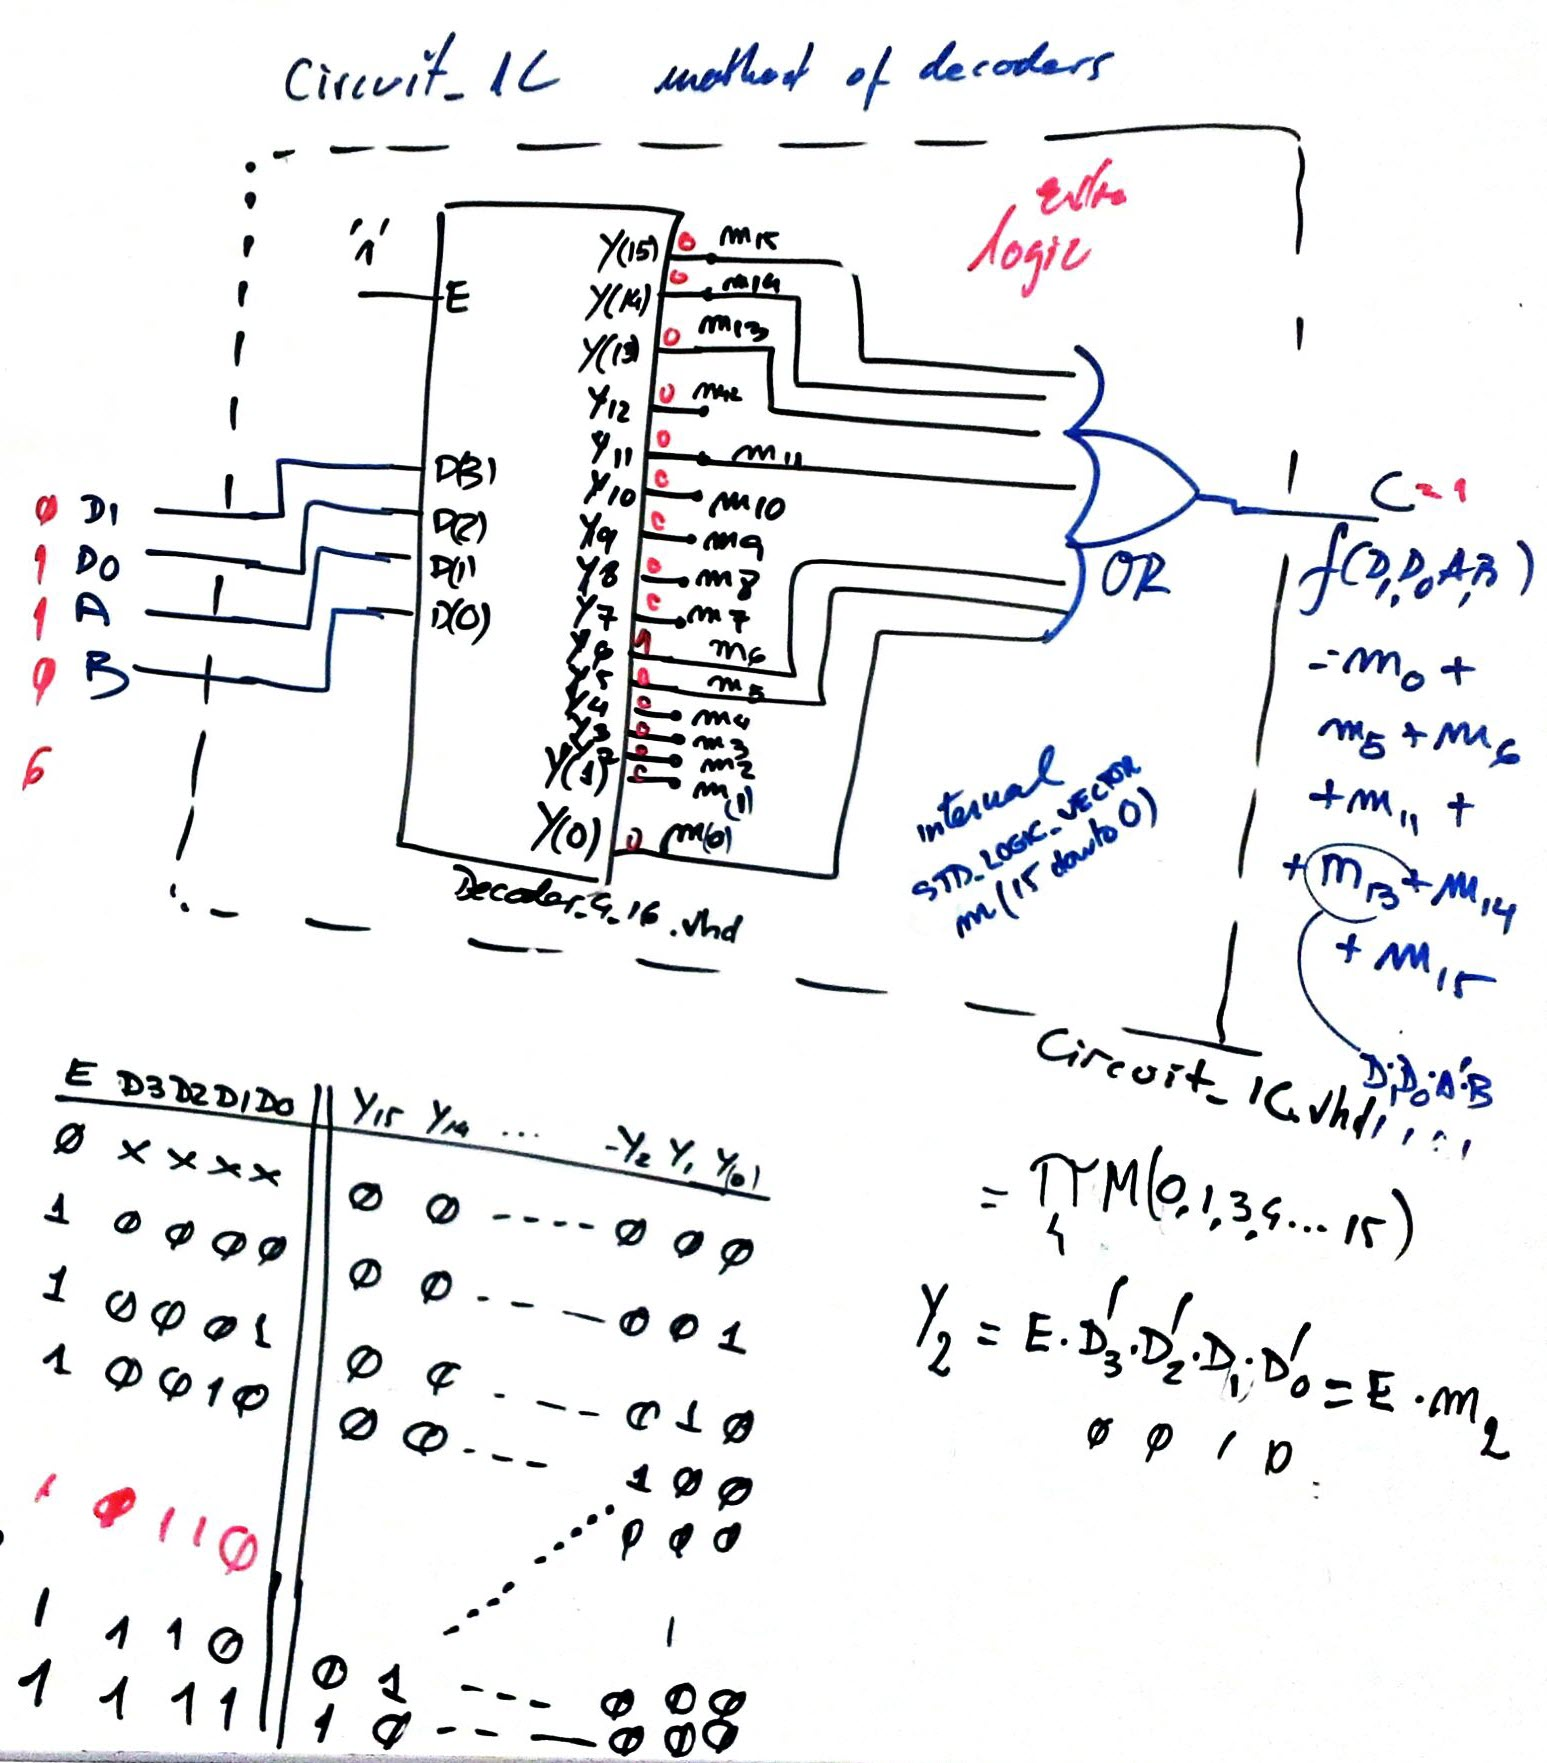 Digital Circuits And Systems I Sistemes Digitals Csd Gate Full Adder Logic Diagram Additionally 1 Bit Circuit How Does The Method Of Decoders For Implementing Functions Work C Solved Using This